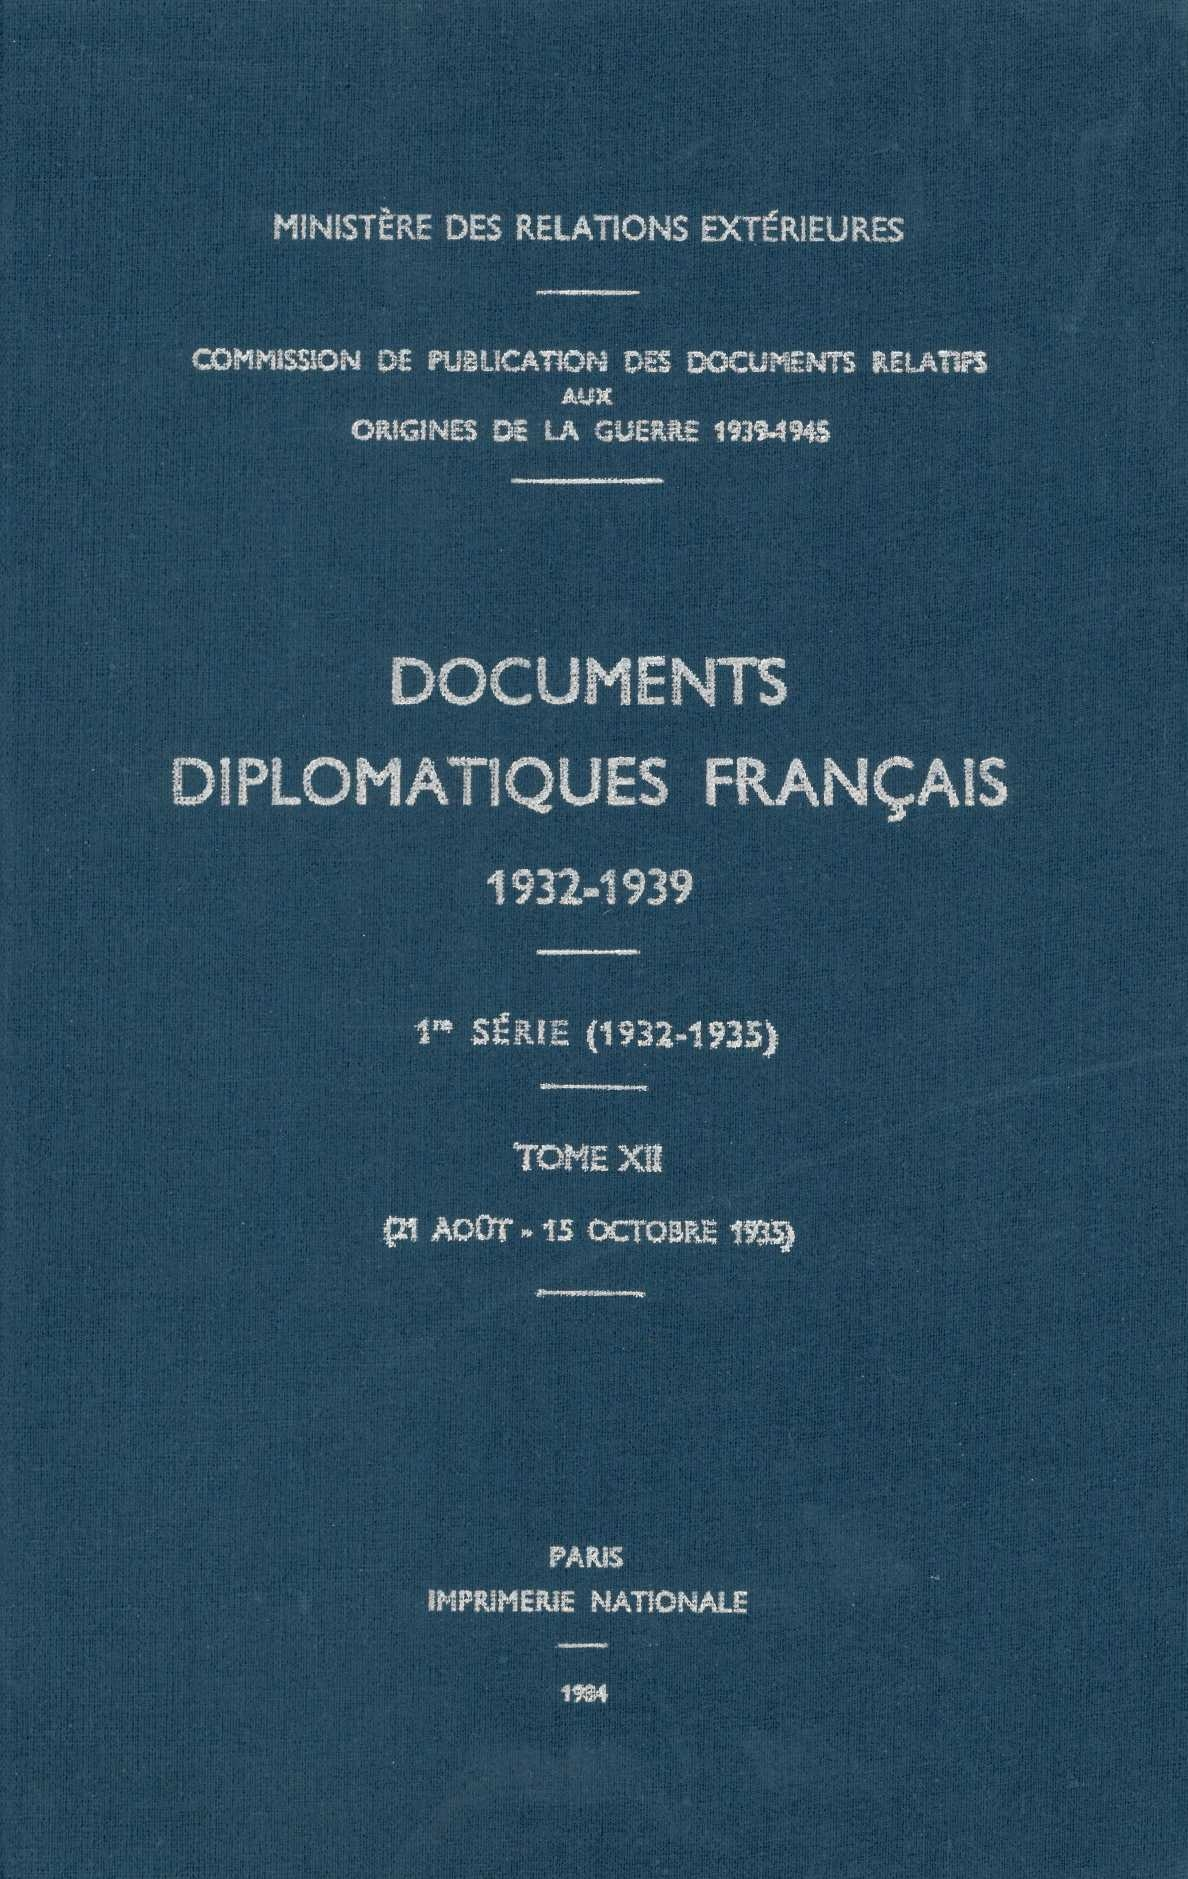 DOCUMENTS DIPLOMATIQUES FRANCAIS - 1935 - TOME IV (21 AOUT - 15 OCTOBRE)